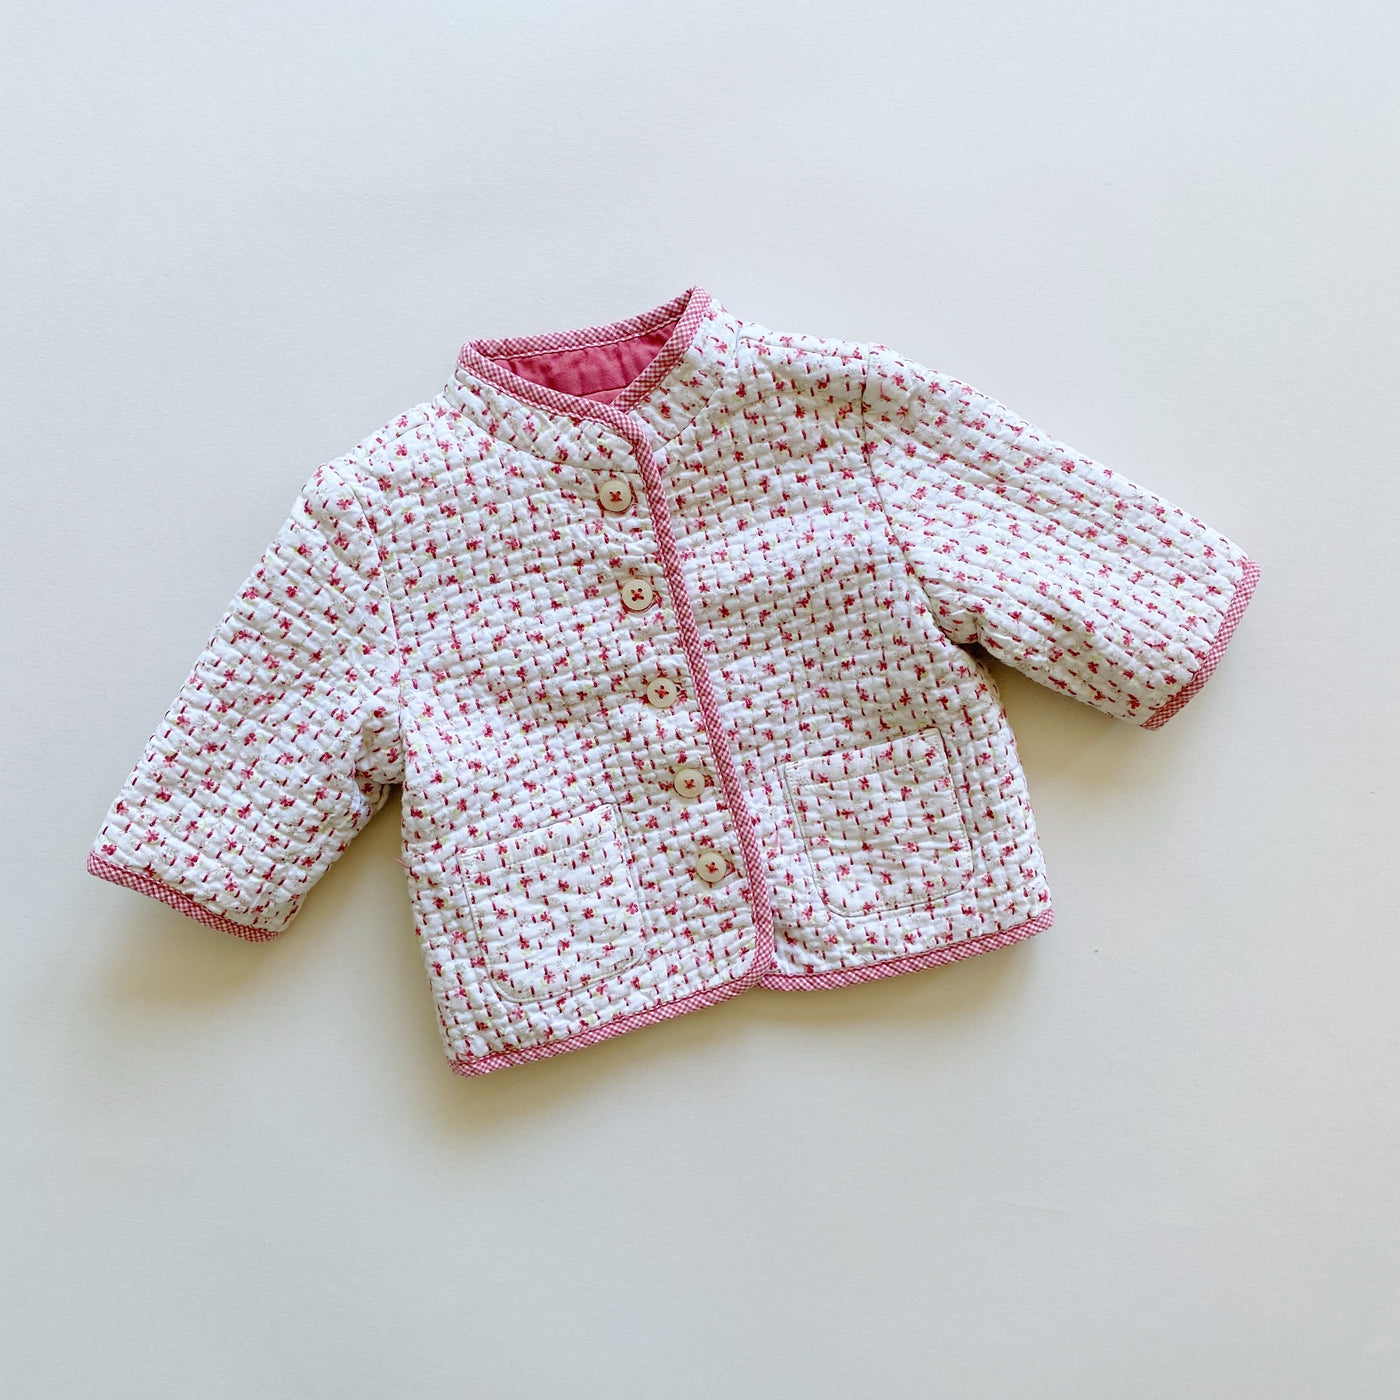 Janie and Jack White and Pink Reversible Jacket / Size 3-6M